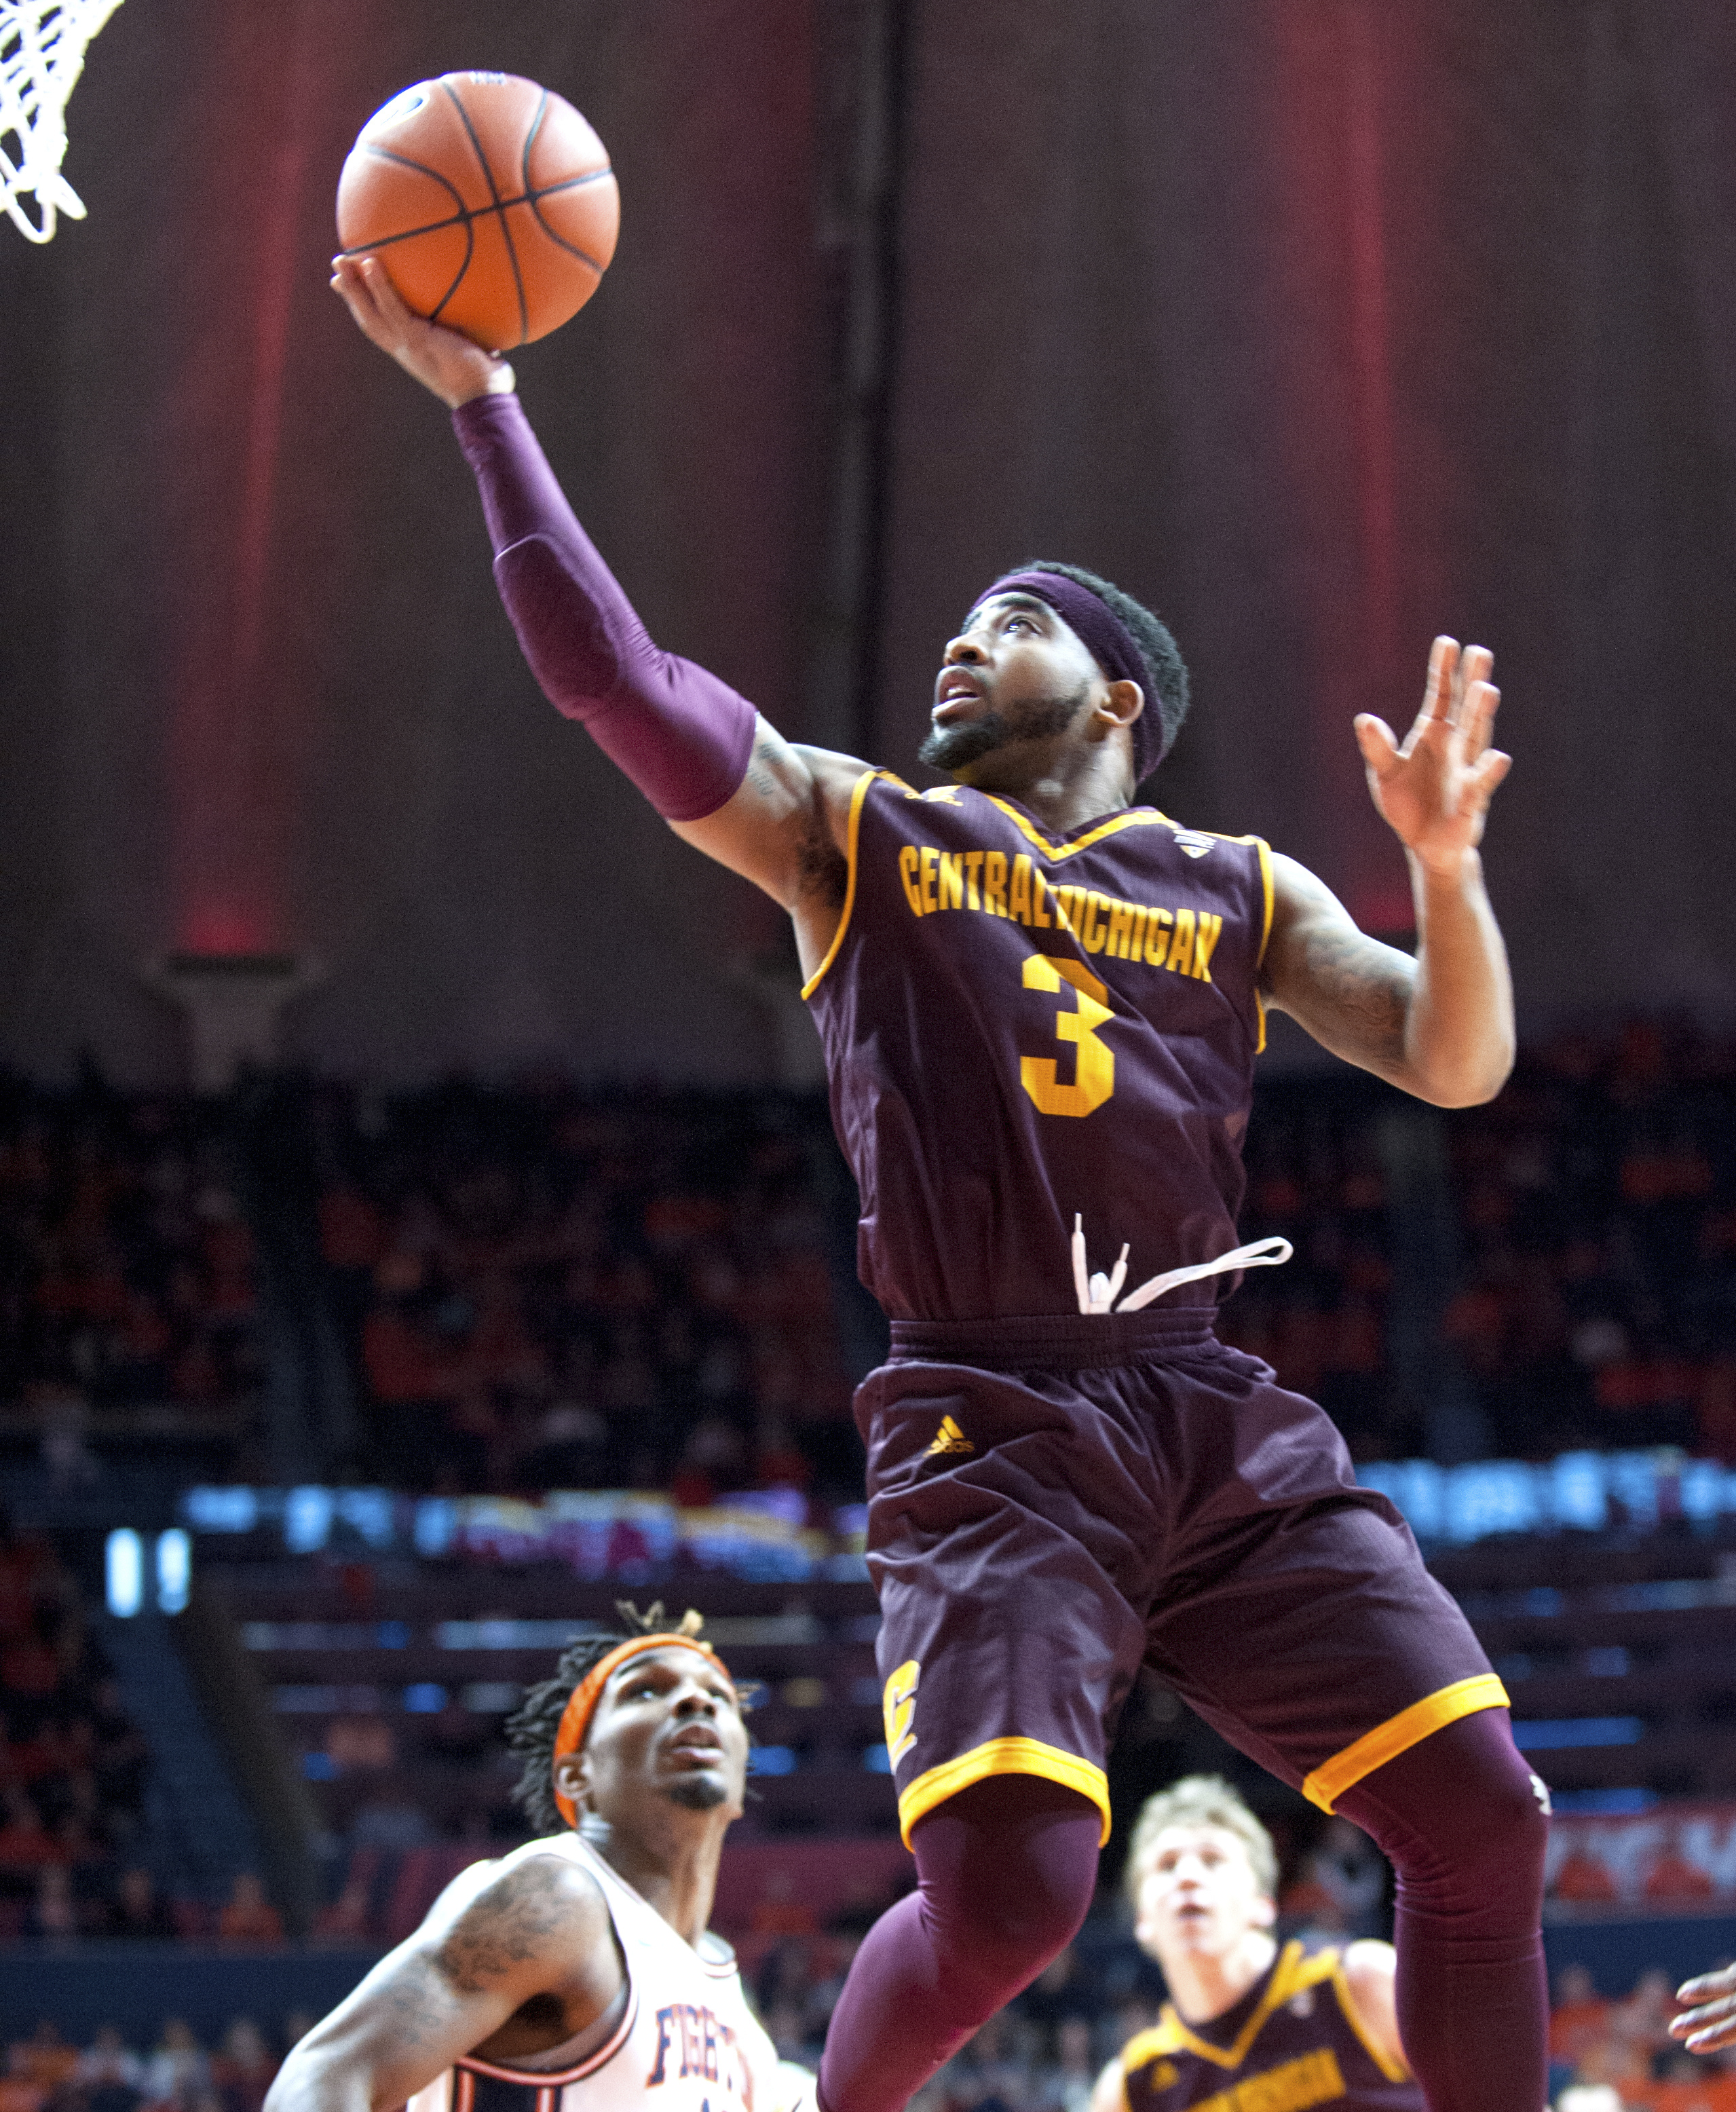 Central Michigan's guard Marcus Keene (3) during the second half of their NCAA college basketball game in Champaign, Ill., on Saturday, Dec.10, 2016.